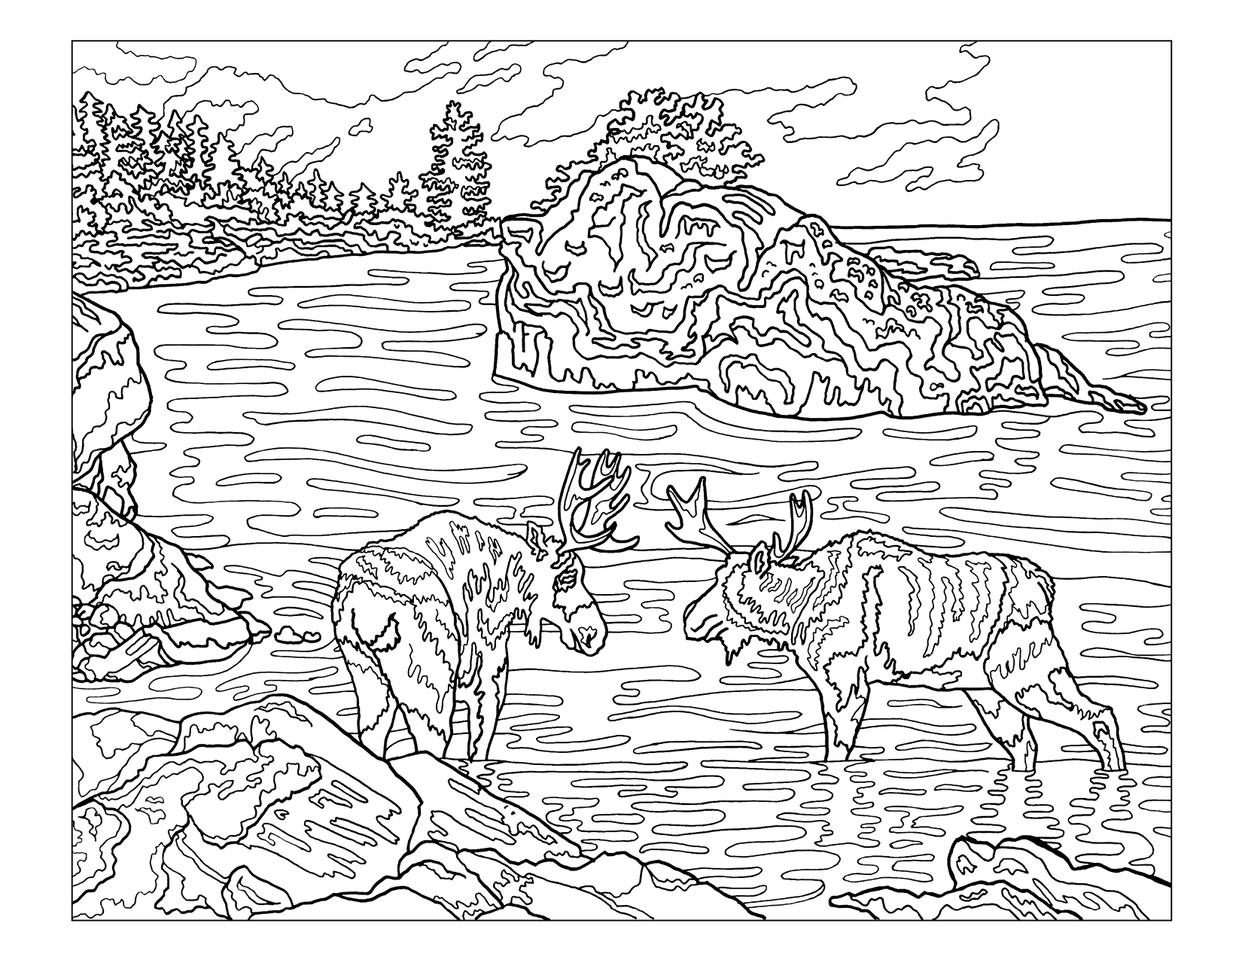 The Sierra Club National Parks Coloring Book Mini-Thumbnail